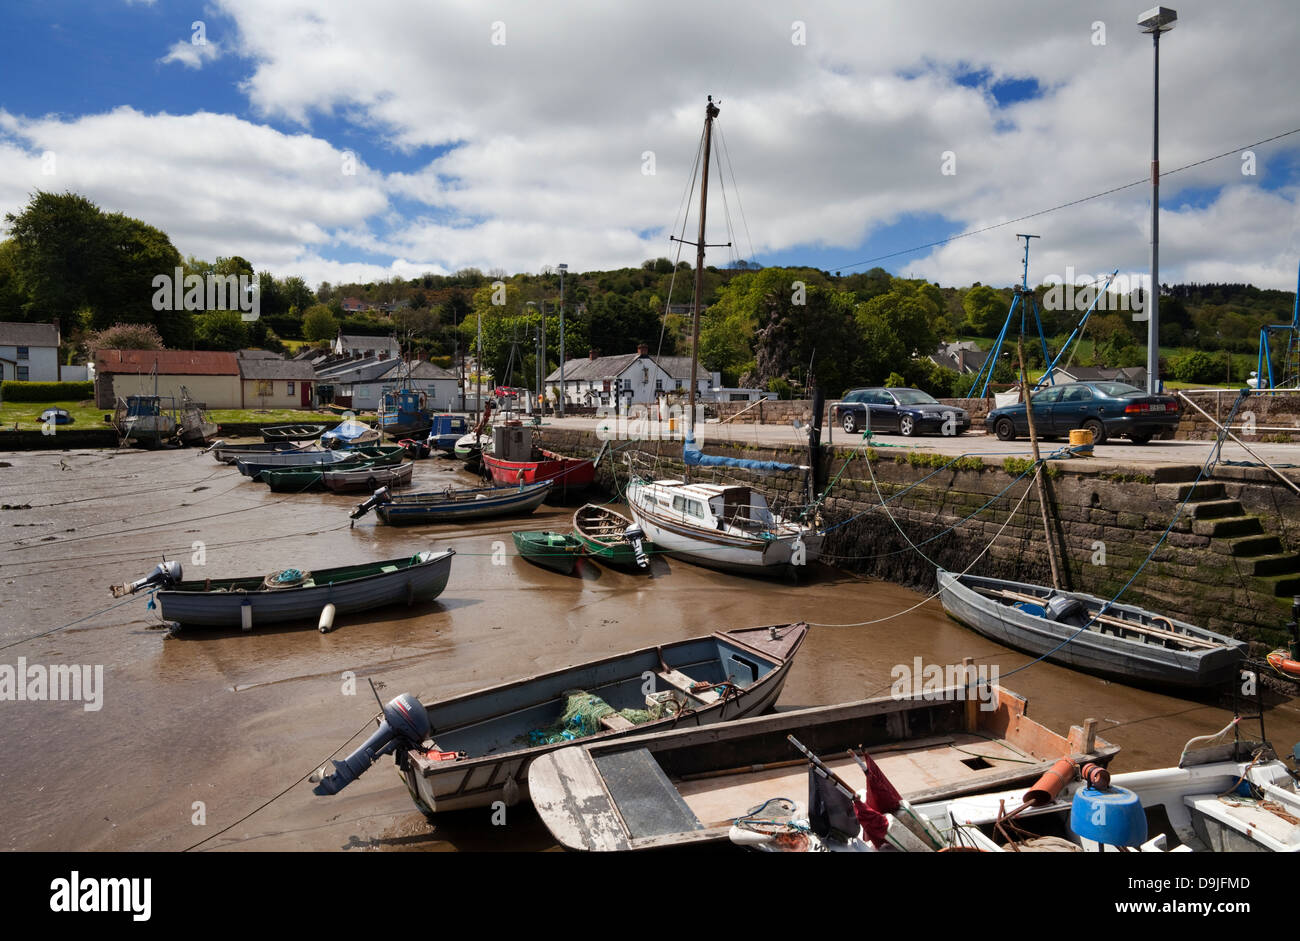 The Fishing Harbour at Cheekpoint, County Waterford, Ireland - Stock Image